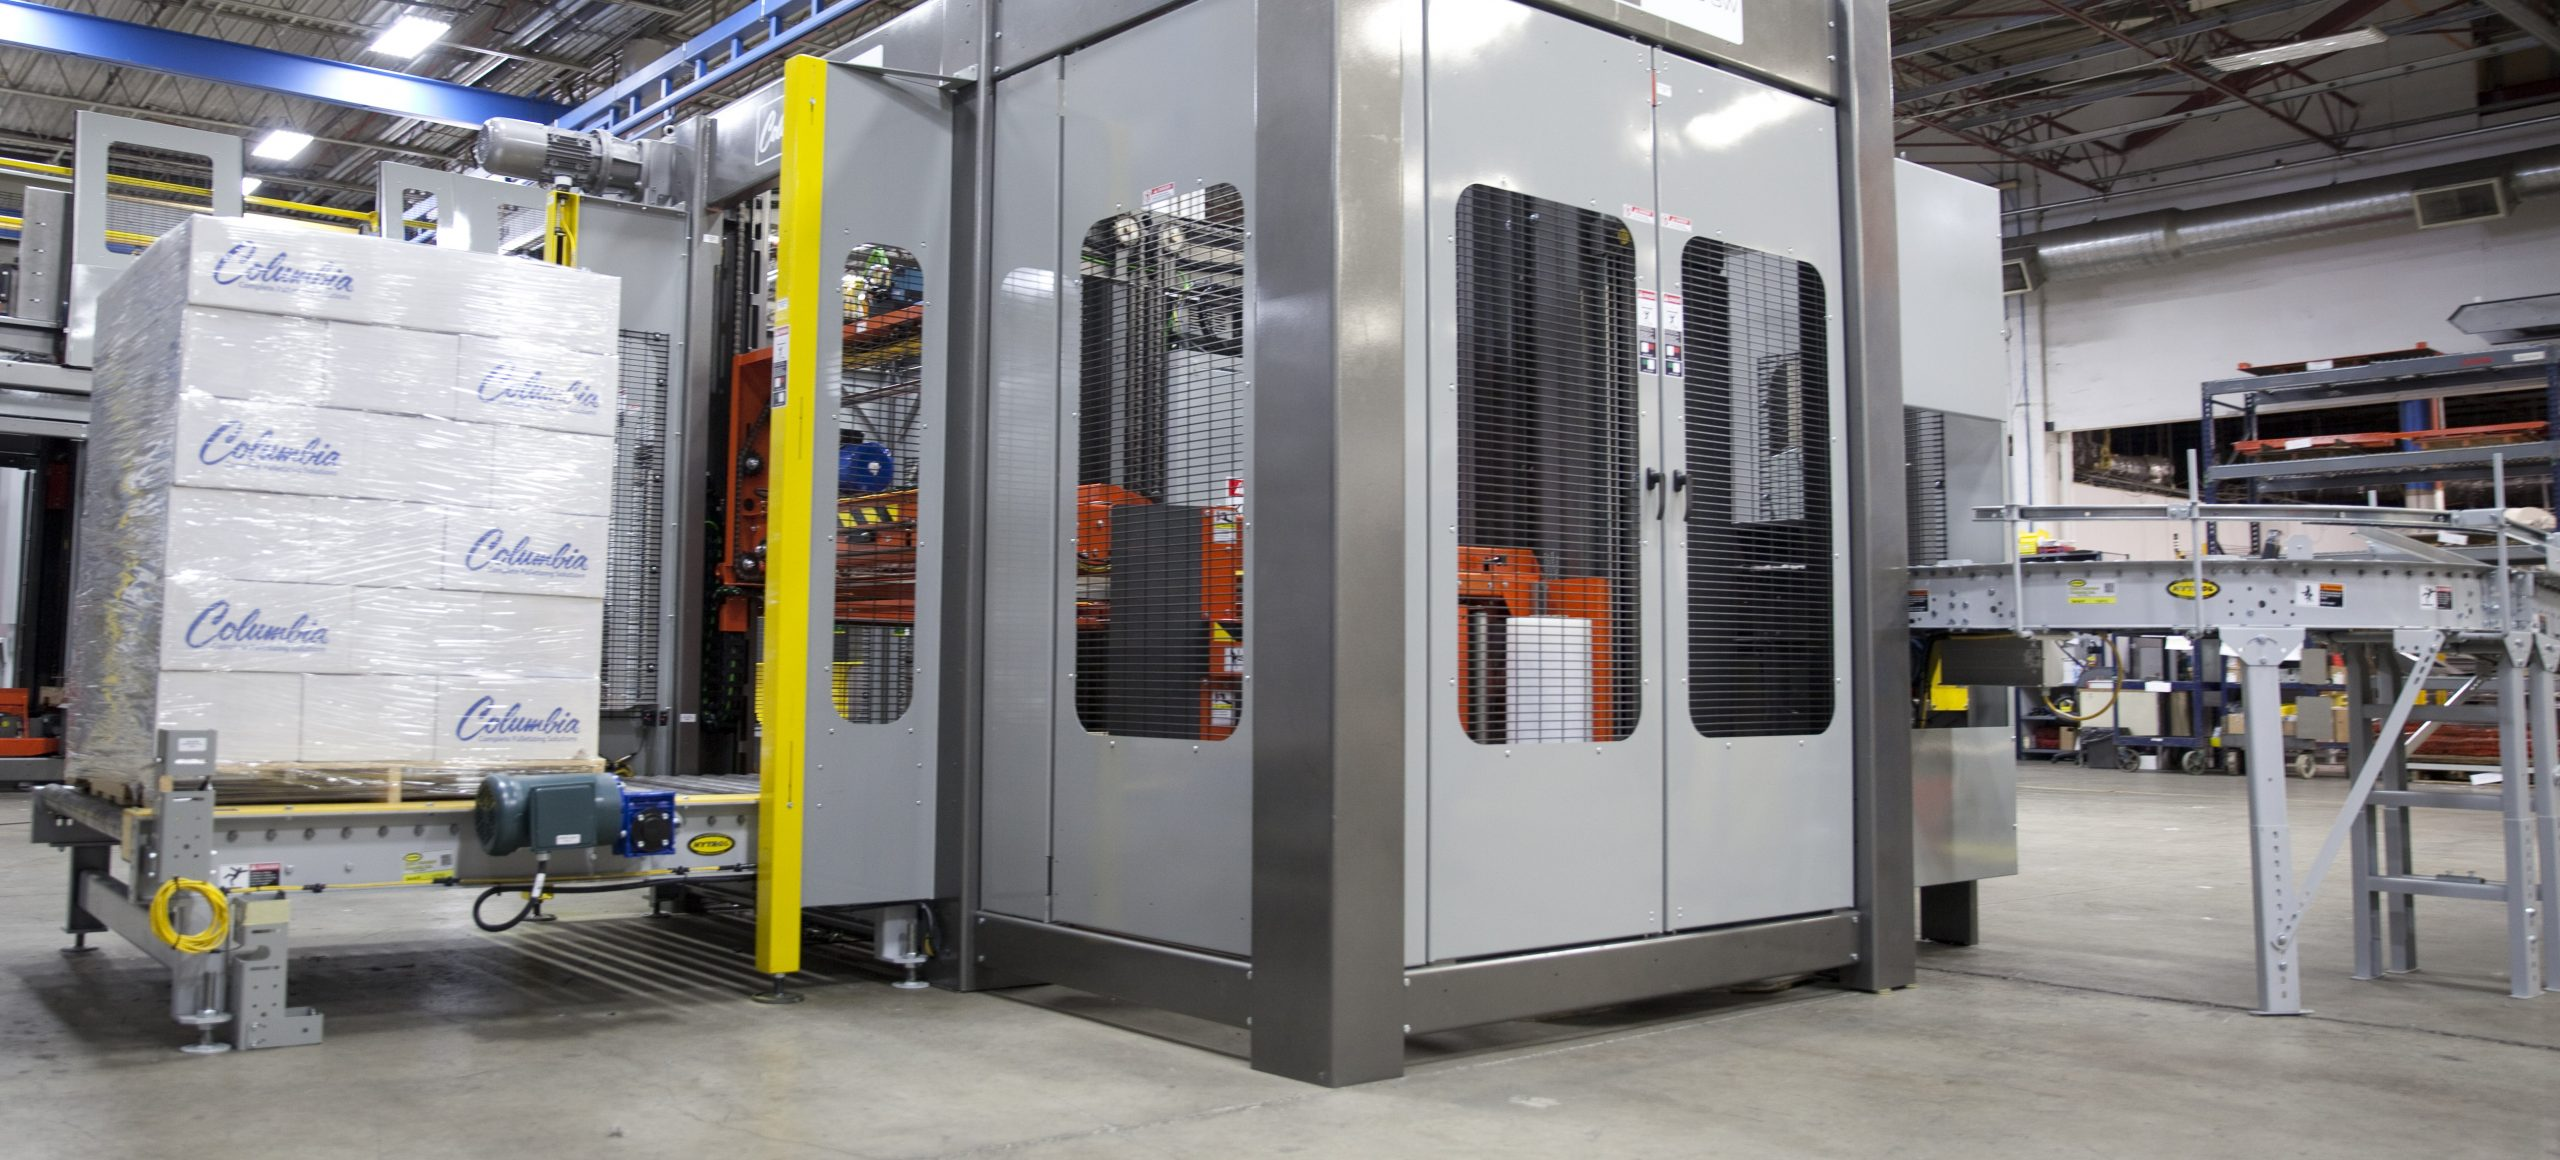 Image of a FL1000 floor level palletizer with Stretch Wrapper.